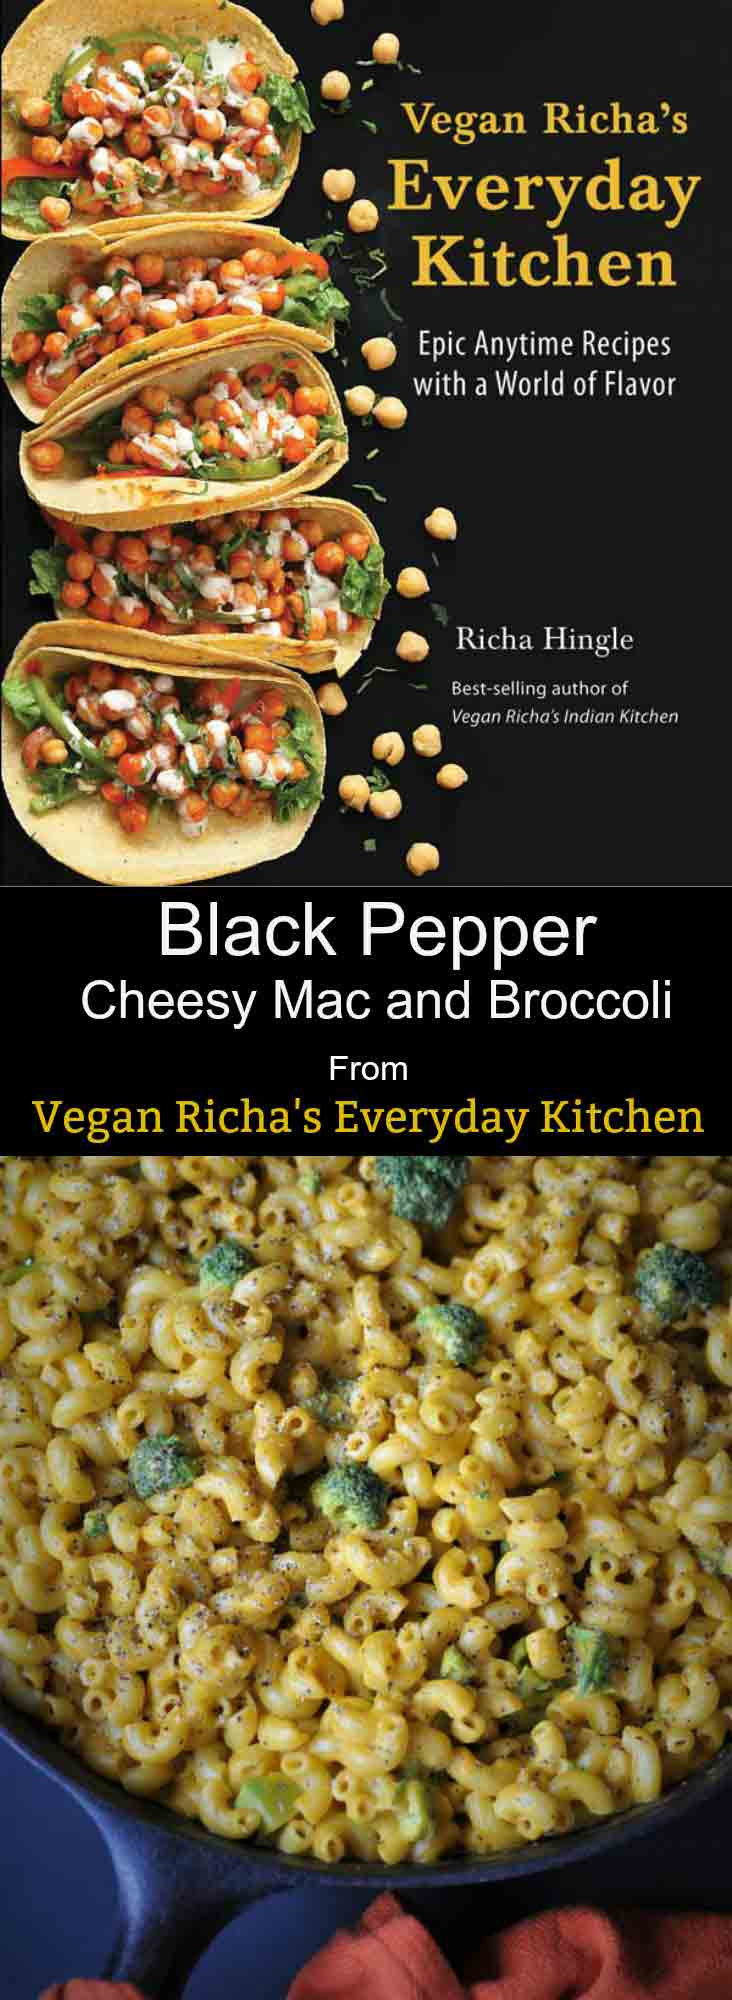 Black Pepper Cheesy Mac and Broccoli by Vegan Richa! You can find this comfort food recipe and more in Richa's new cookbook.